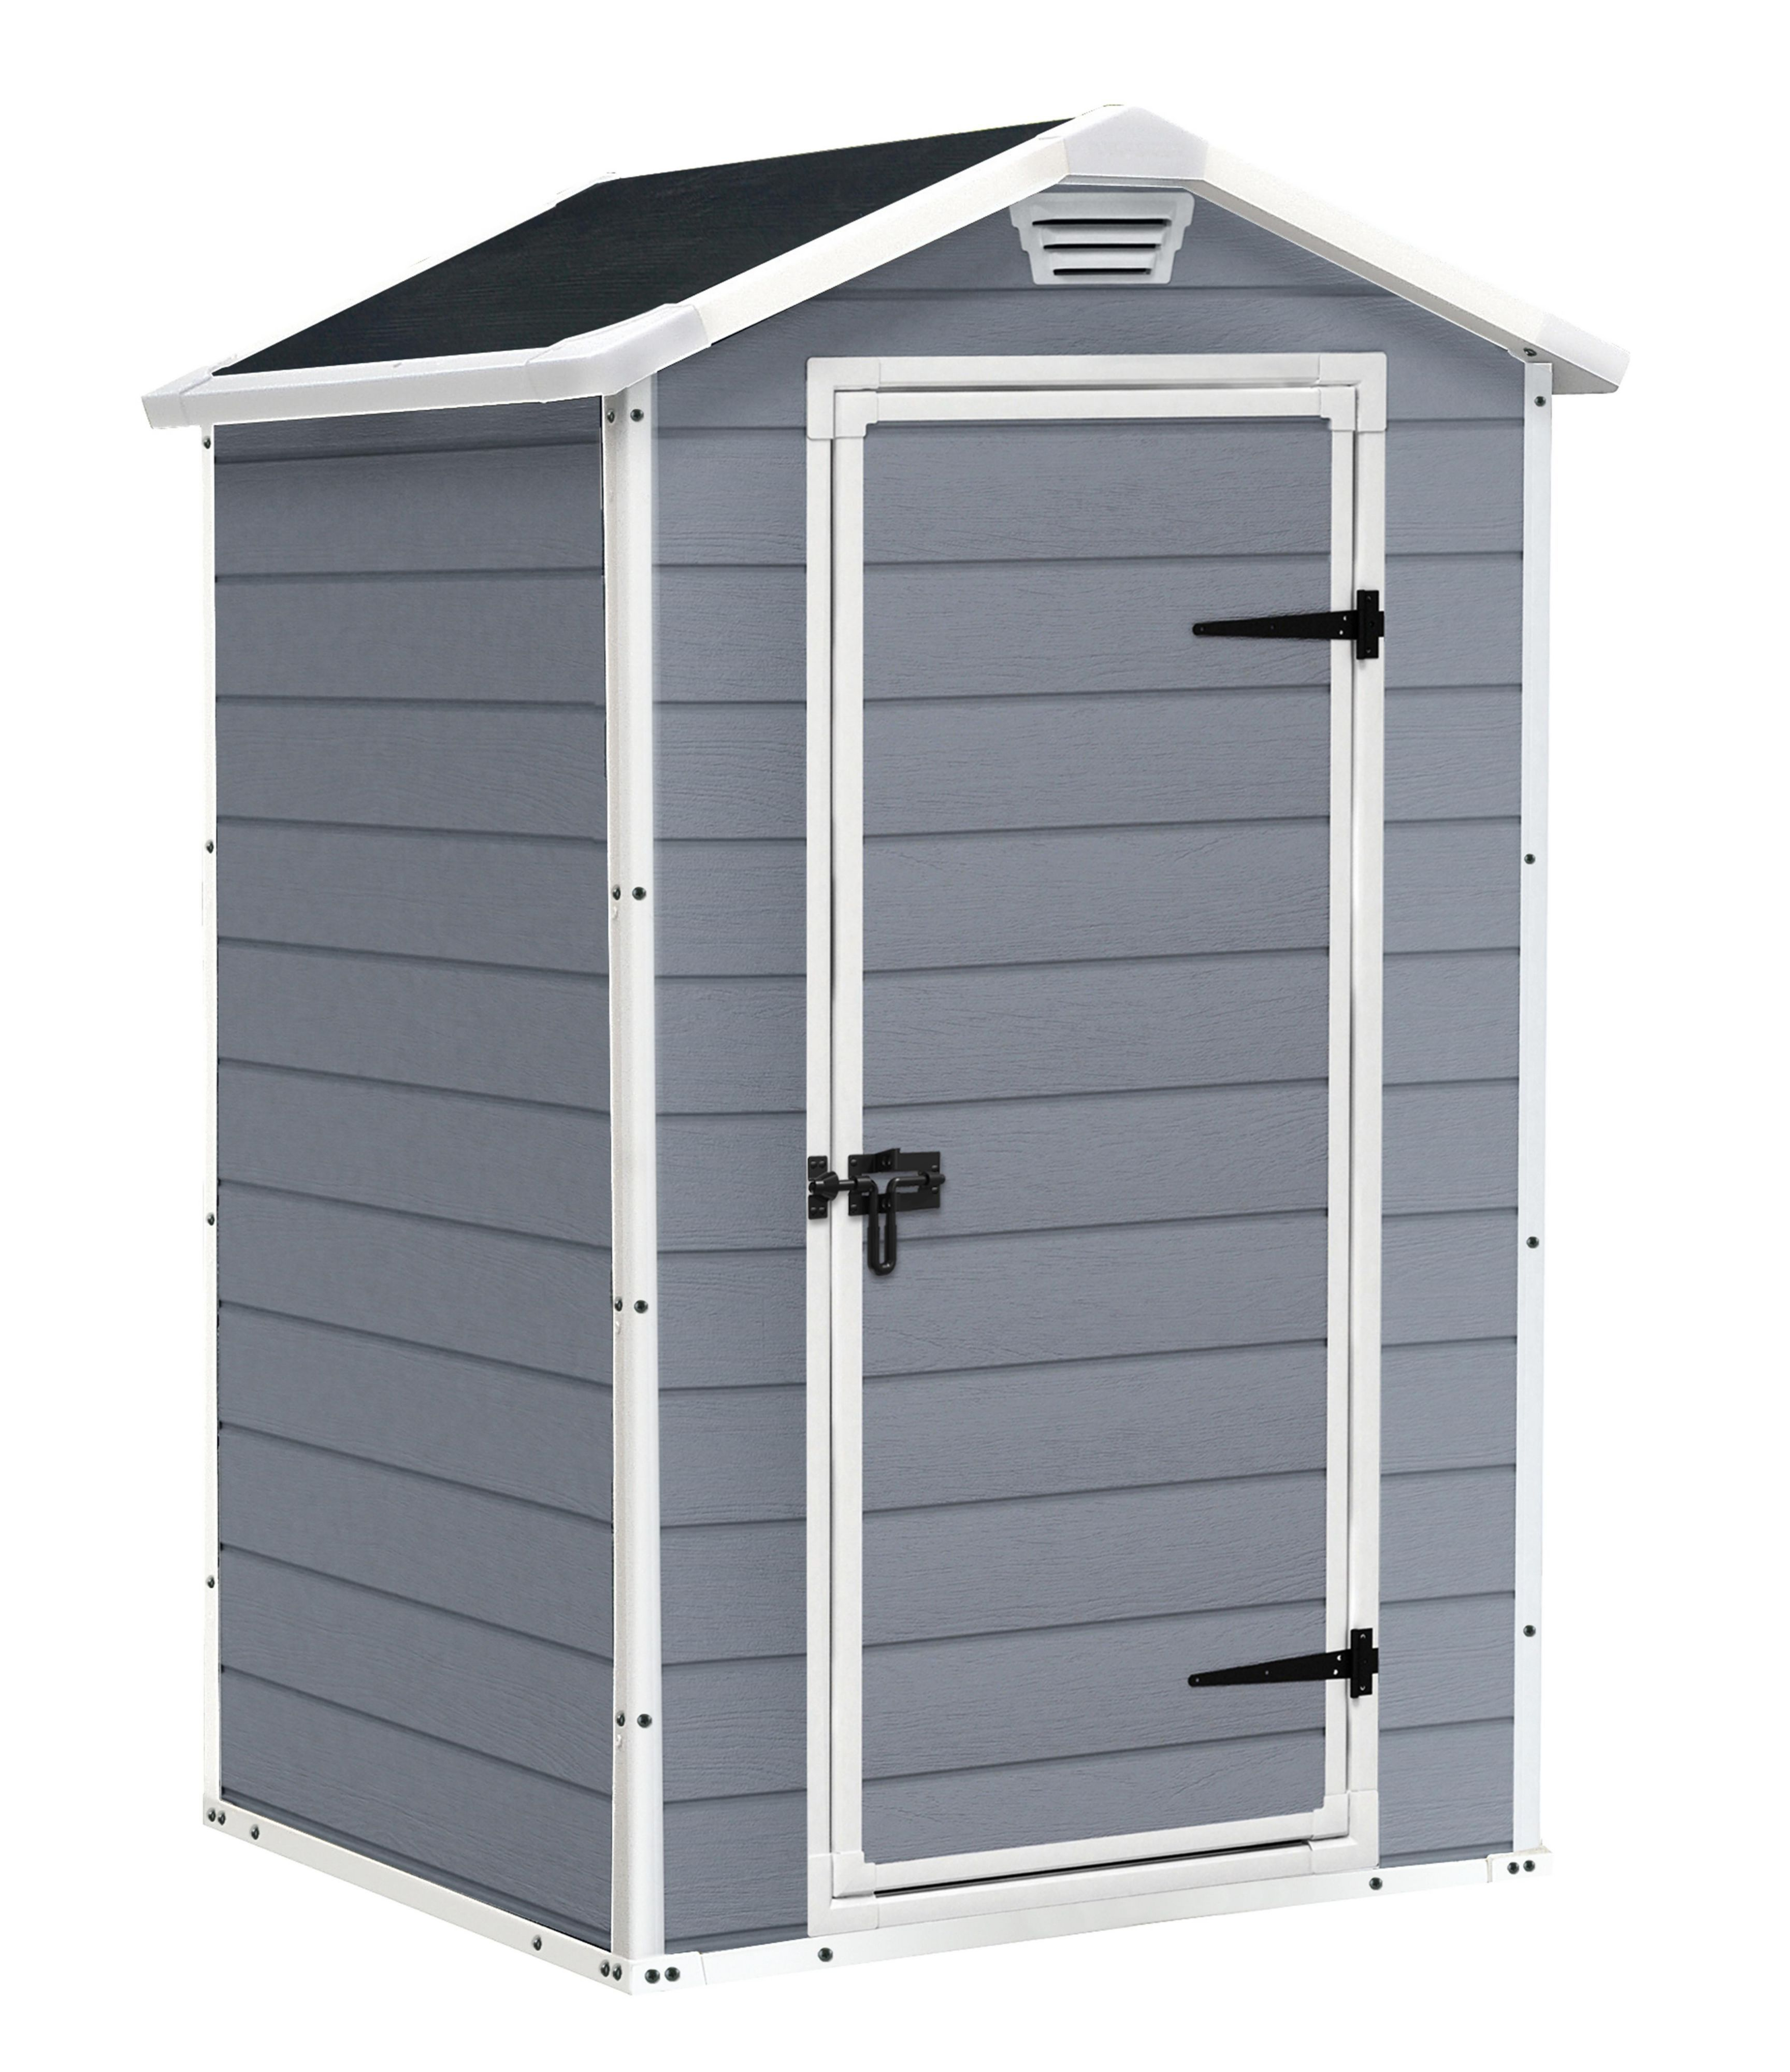 4x3 Manor Apex Plastic Shed Base Included B Q For All Your Home And Garden Supplies And Advice On Al Garden Storage Shed Outdoor Garden Storage Plastic Sheds